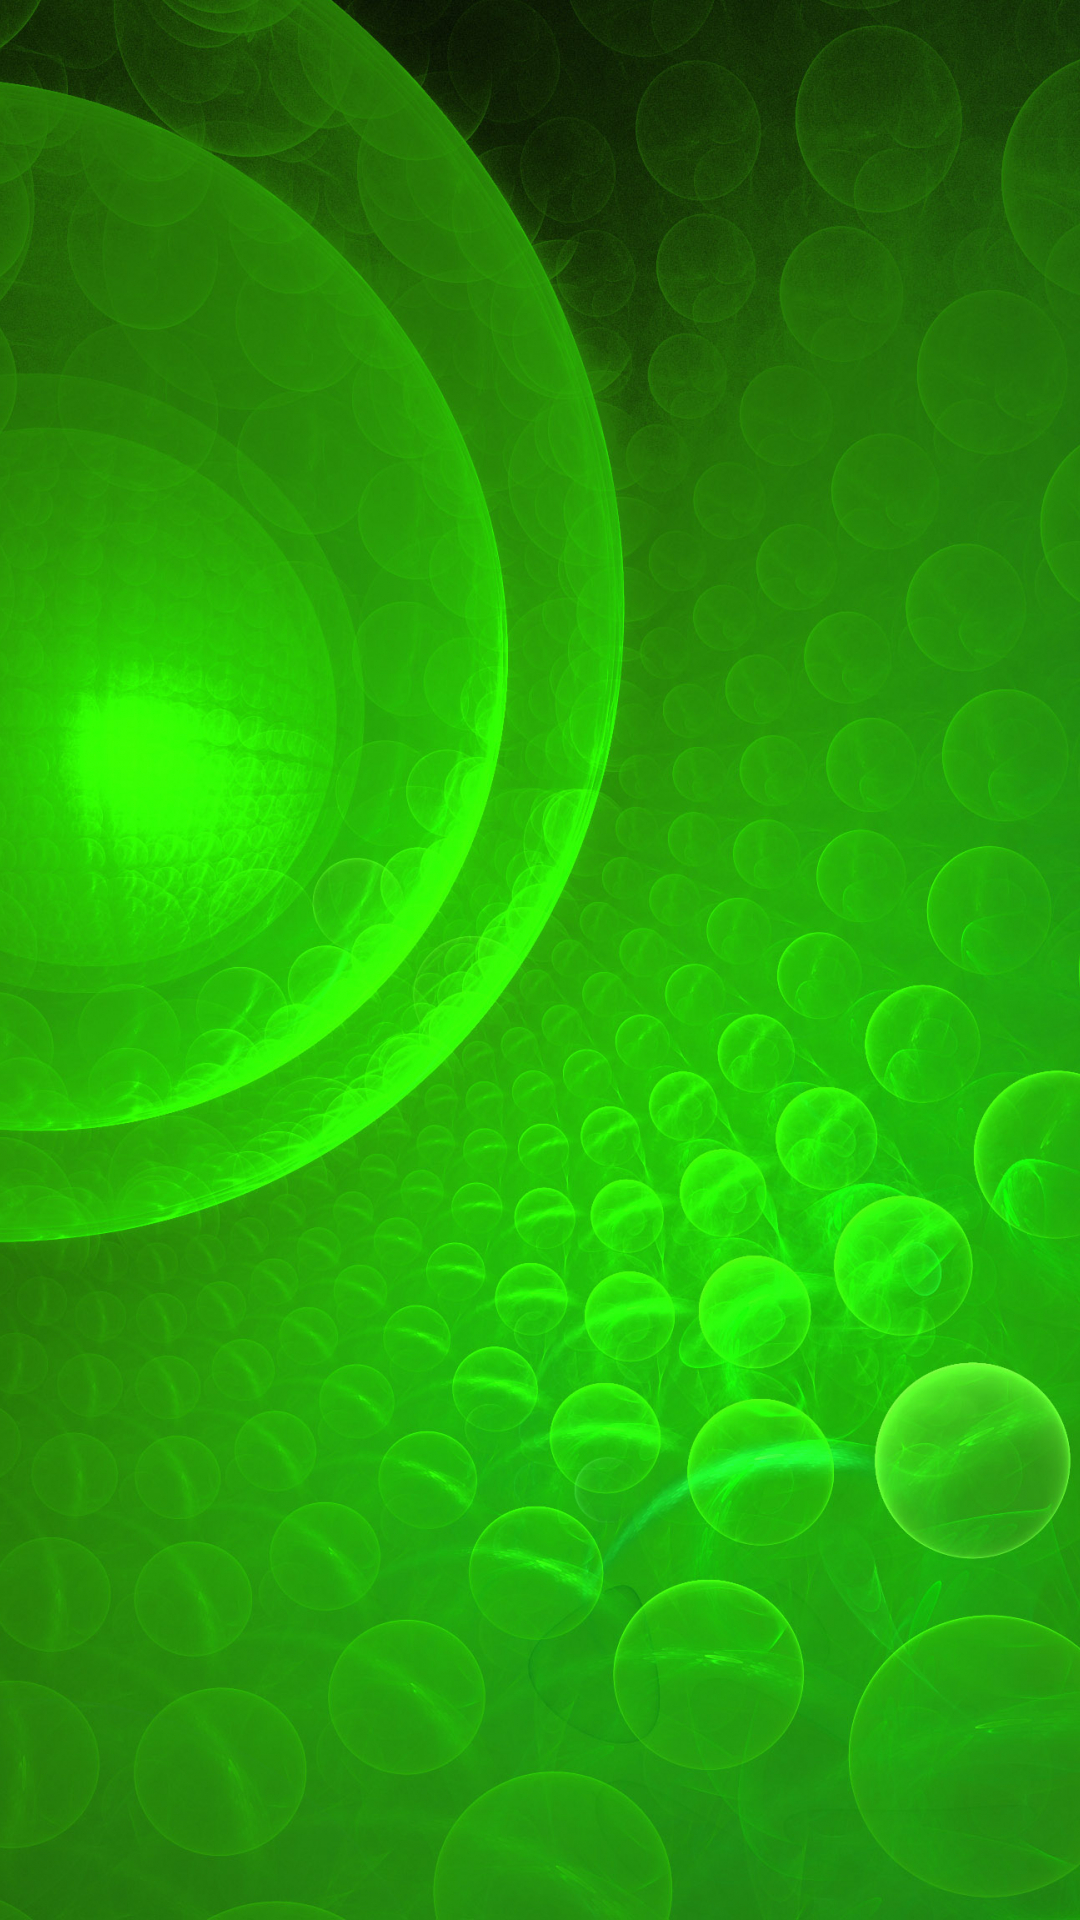 Free download Green Abstract Backgrounds HD wallpaper background 3200x2303 for your Desktop ...